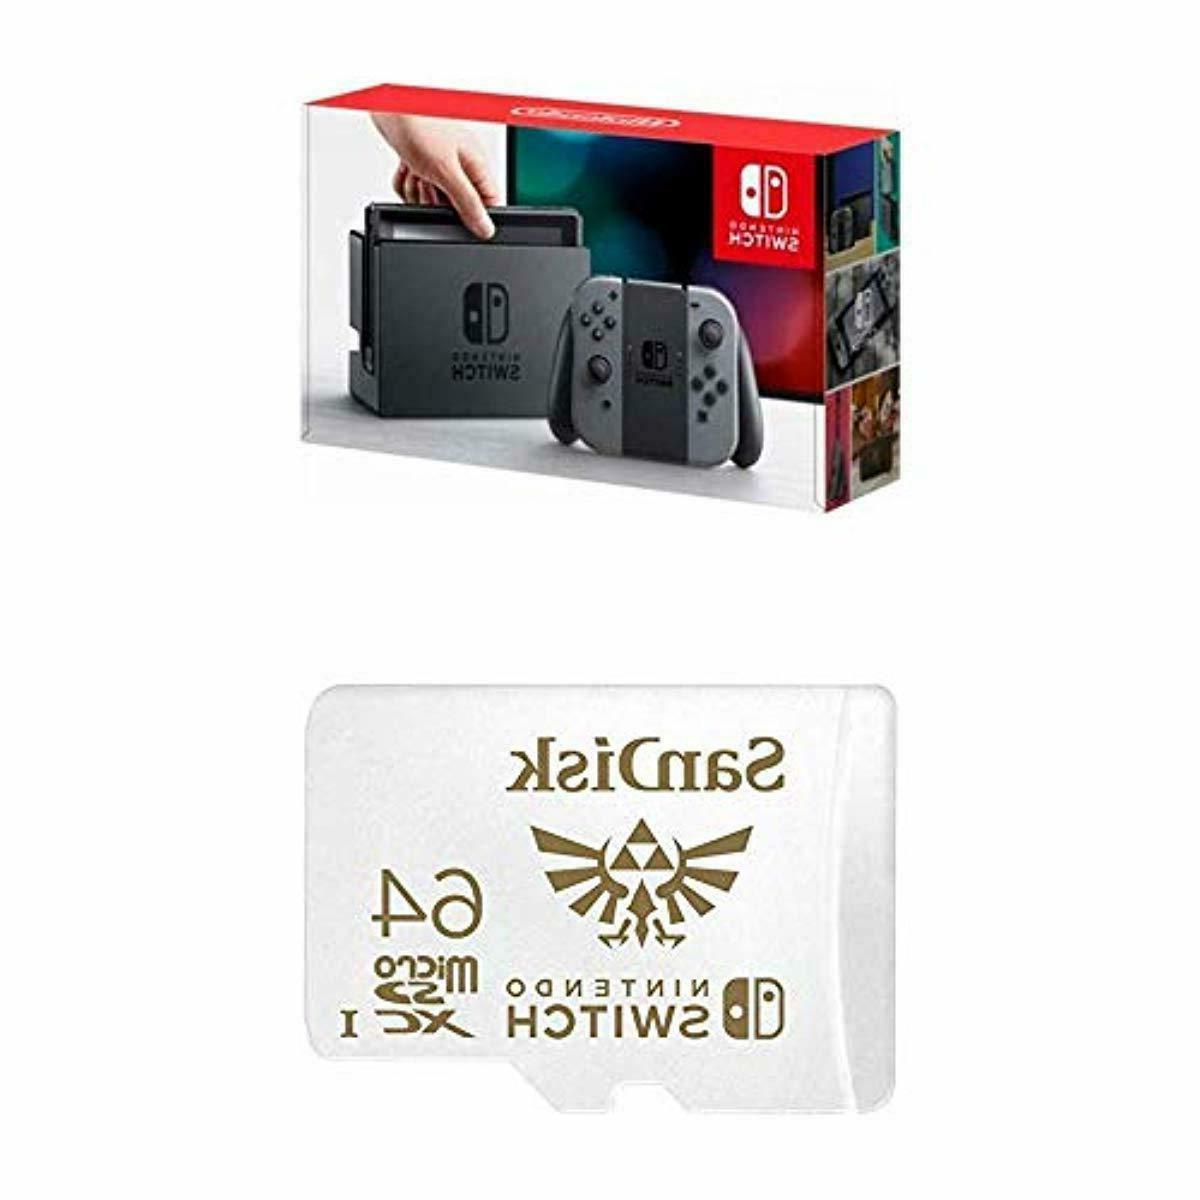 nintendo switch gray joy con with sandisk